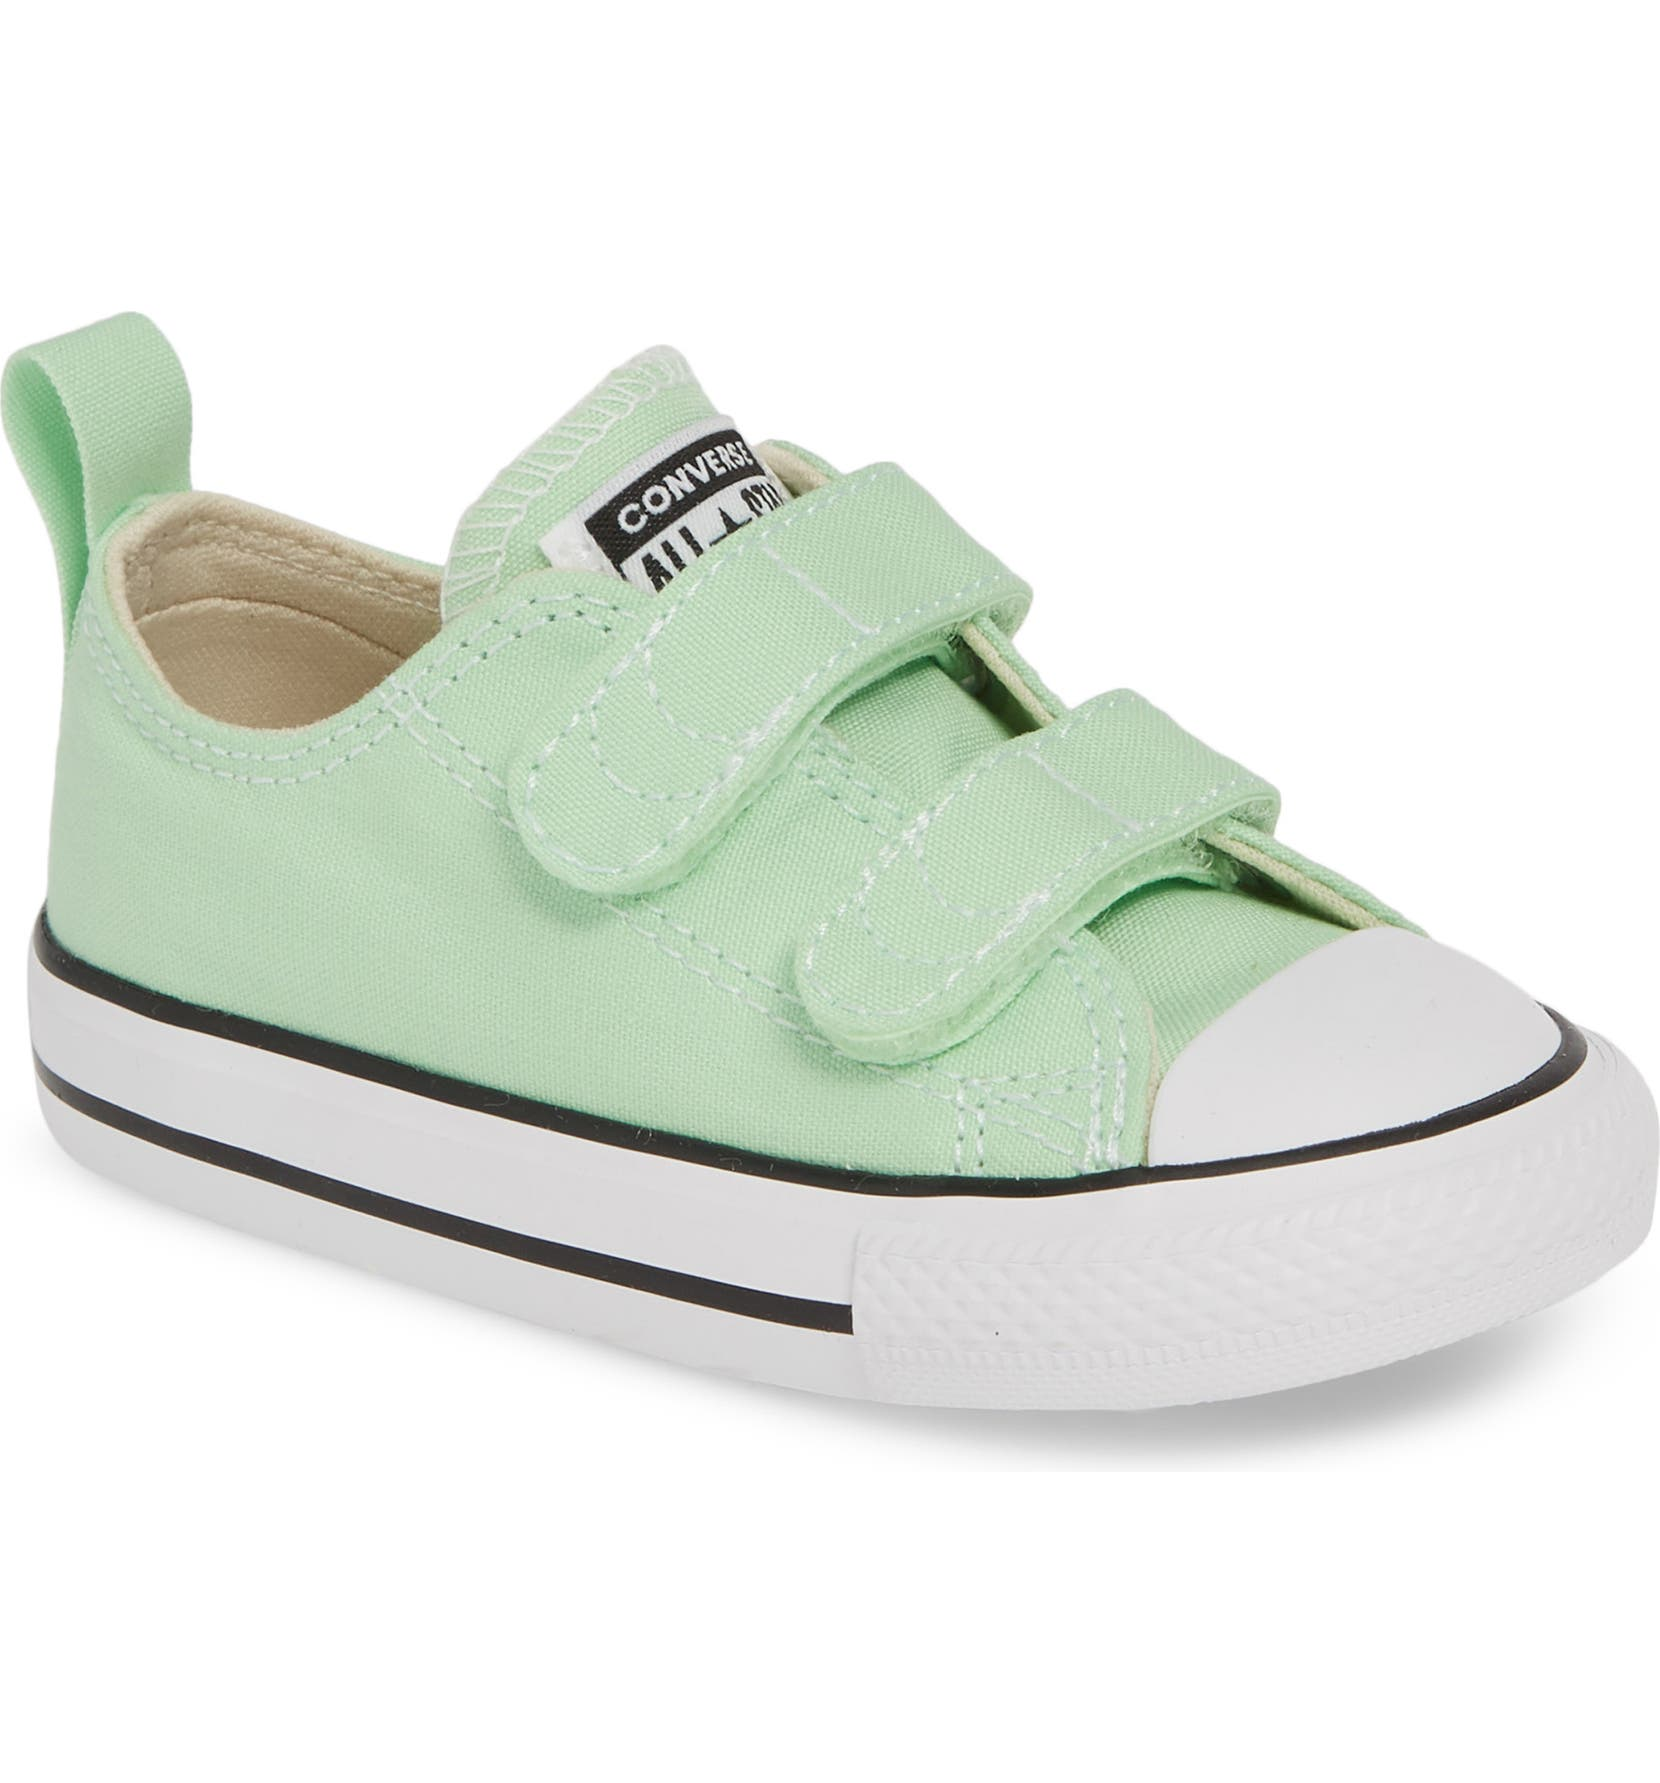 792418958 Converse Chuck Taylor® 'Double Strap' Sneaker (Baby, Walker & Toddler)    Nordstrom